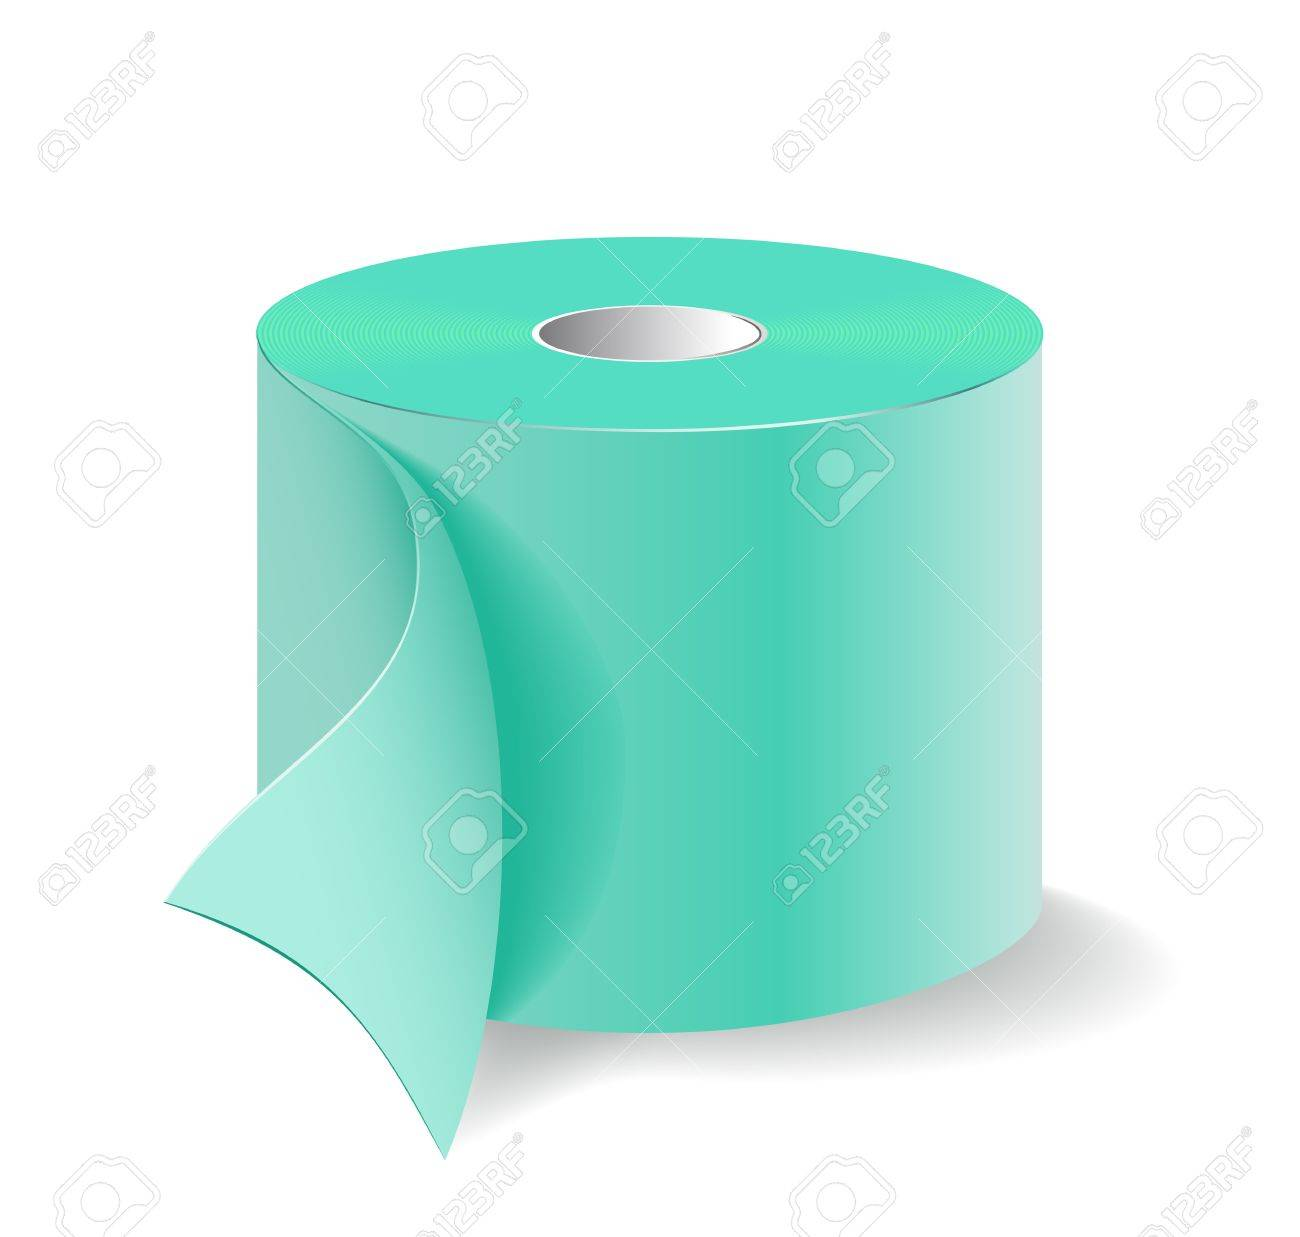 Roll of green toilet paper is shown in the image. - 12195463